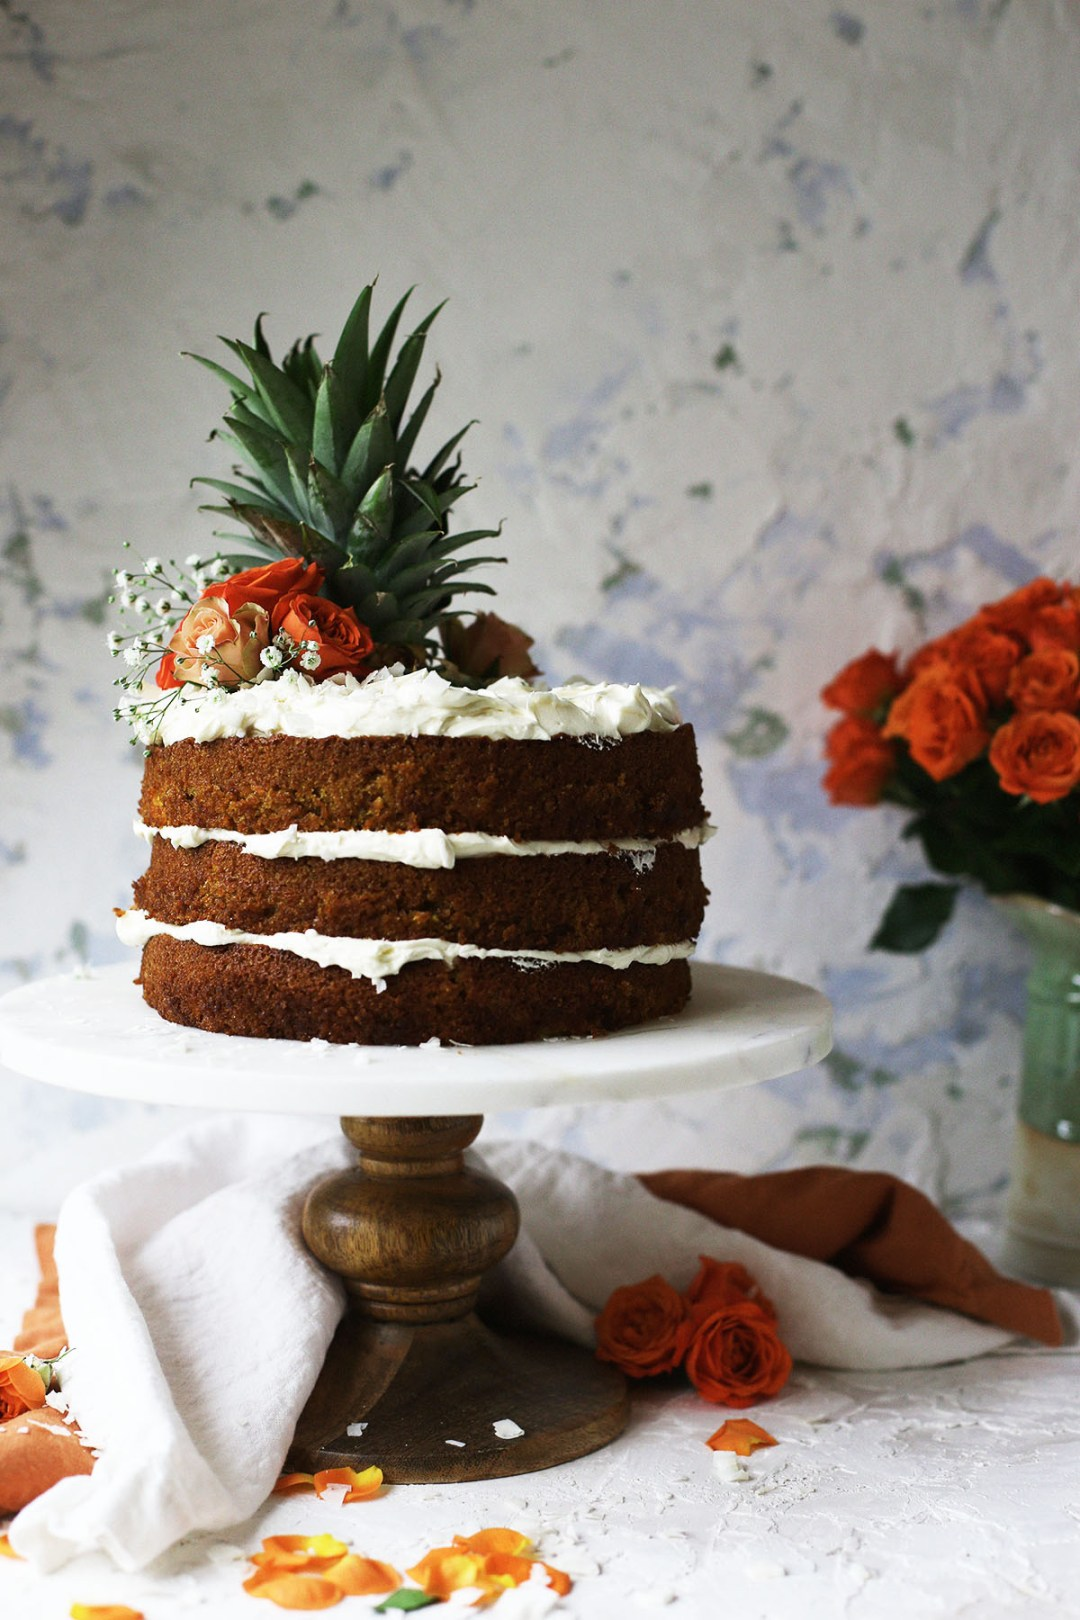 Pineapple Coconut Carrot Cake with Sweetened Condensed Milk Frosting